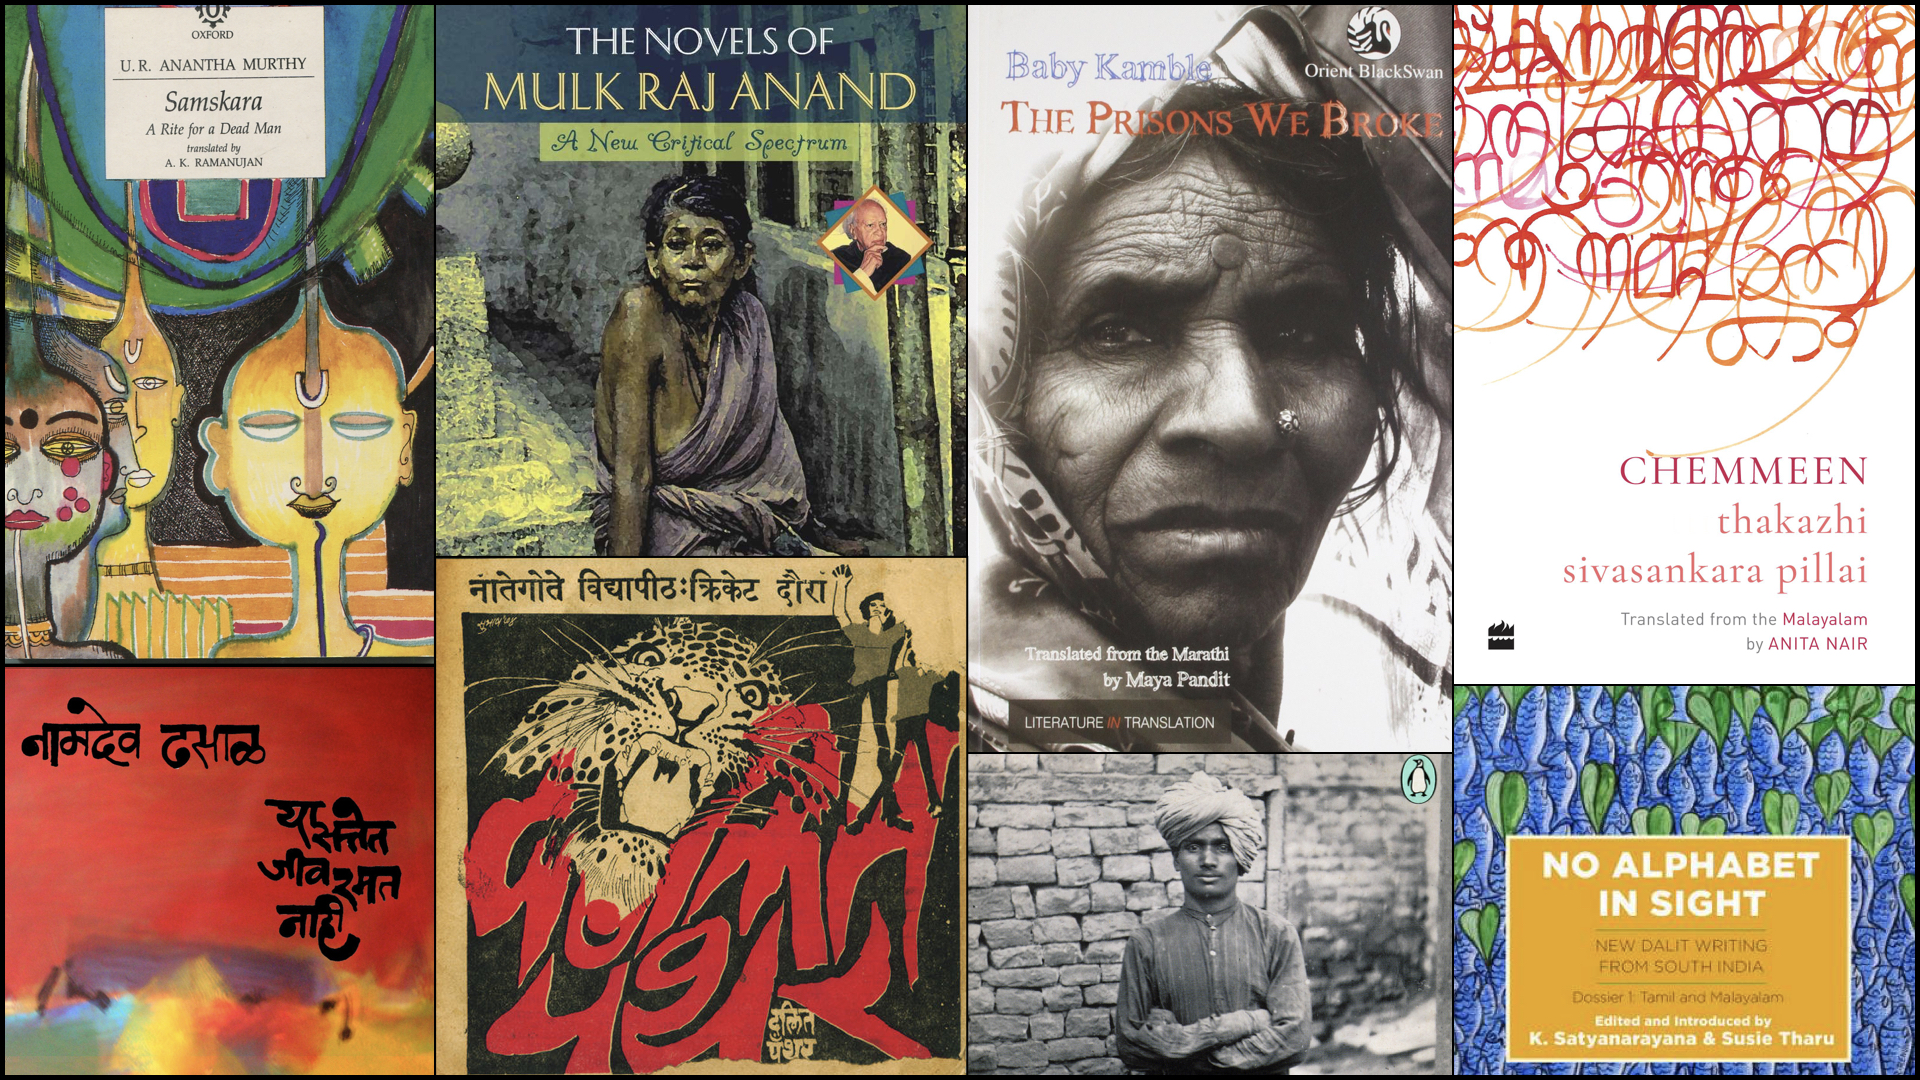 Collage of covers of Dalit books